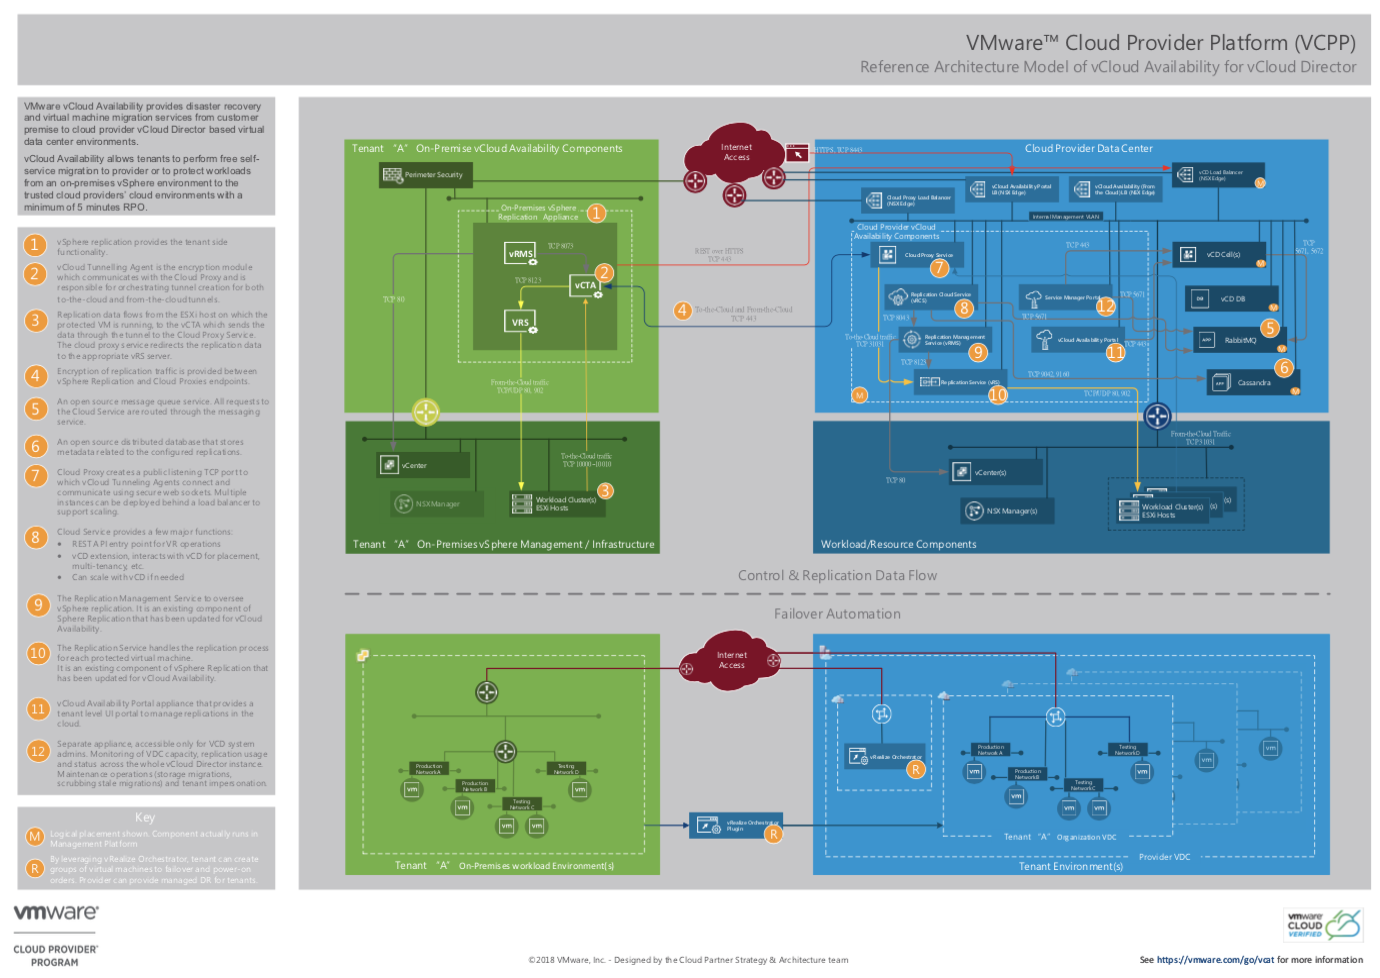 vCloud Availability for vCloud Director 2 0 (DR2C) Reference